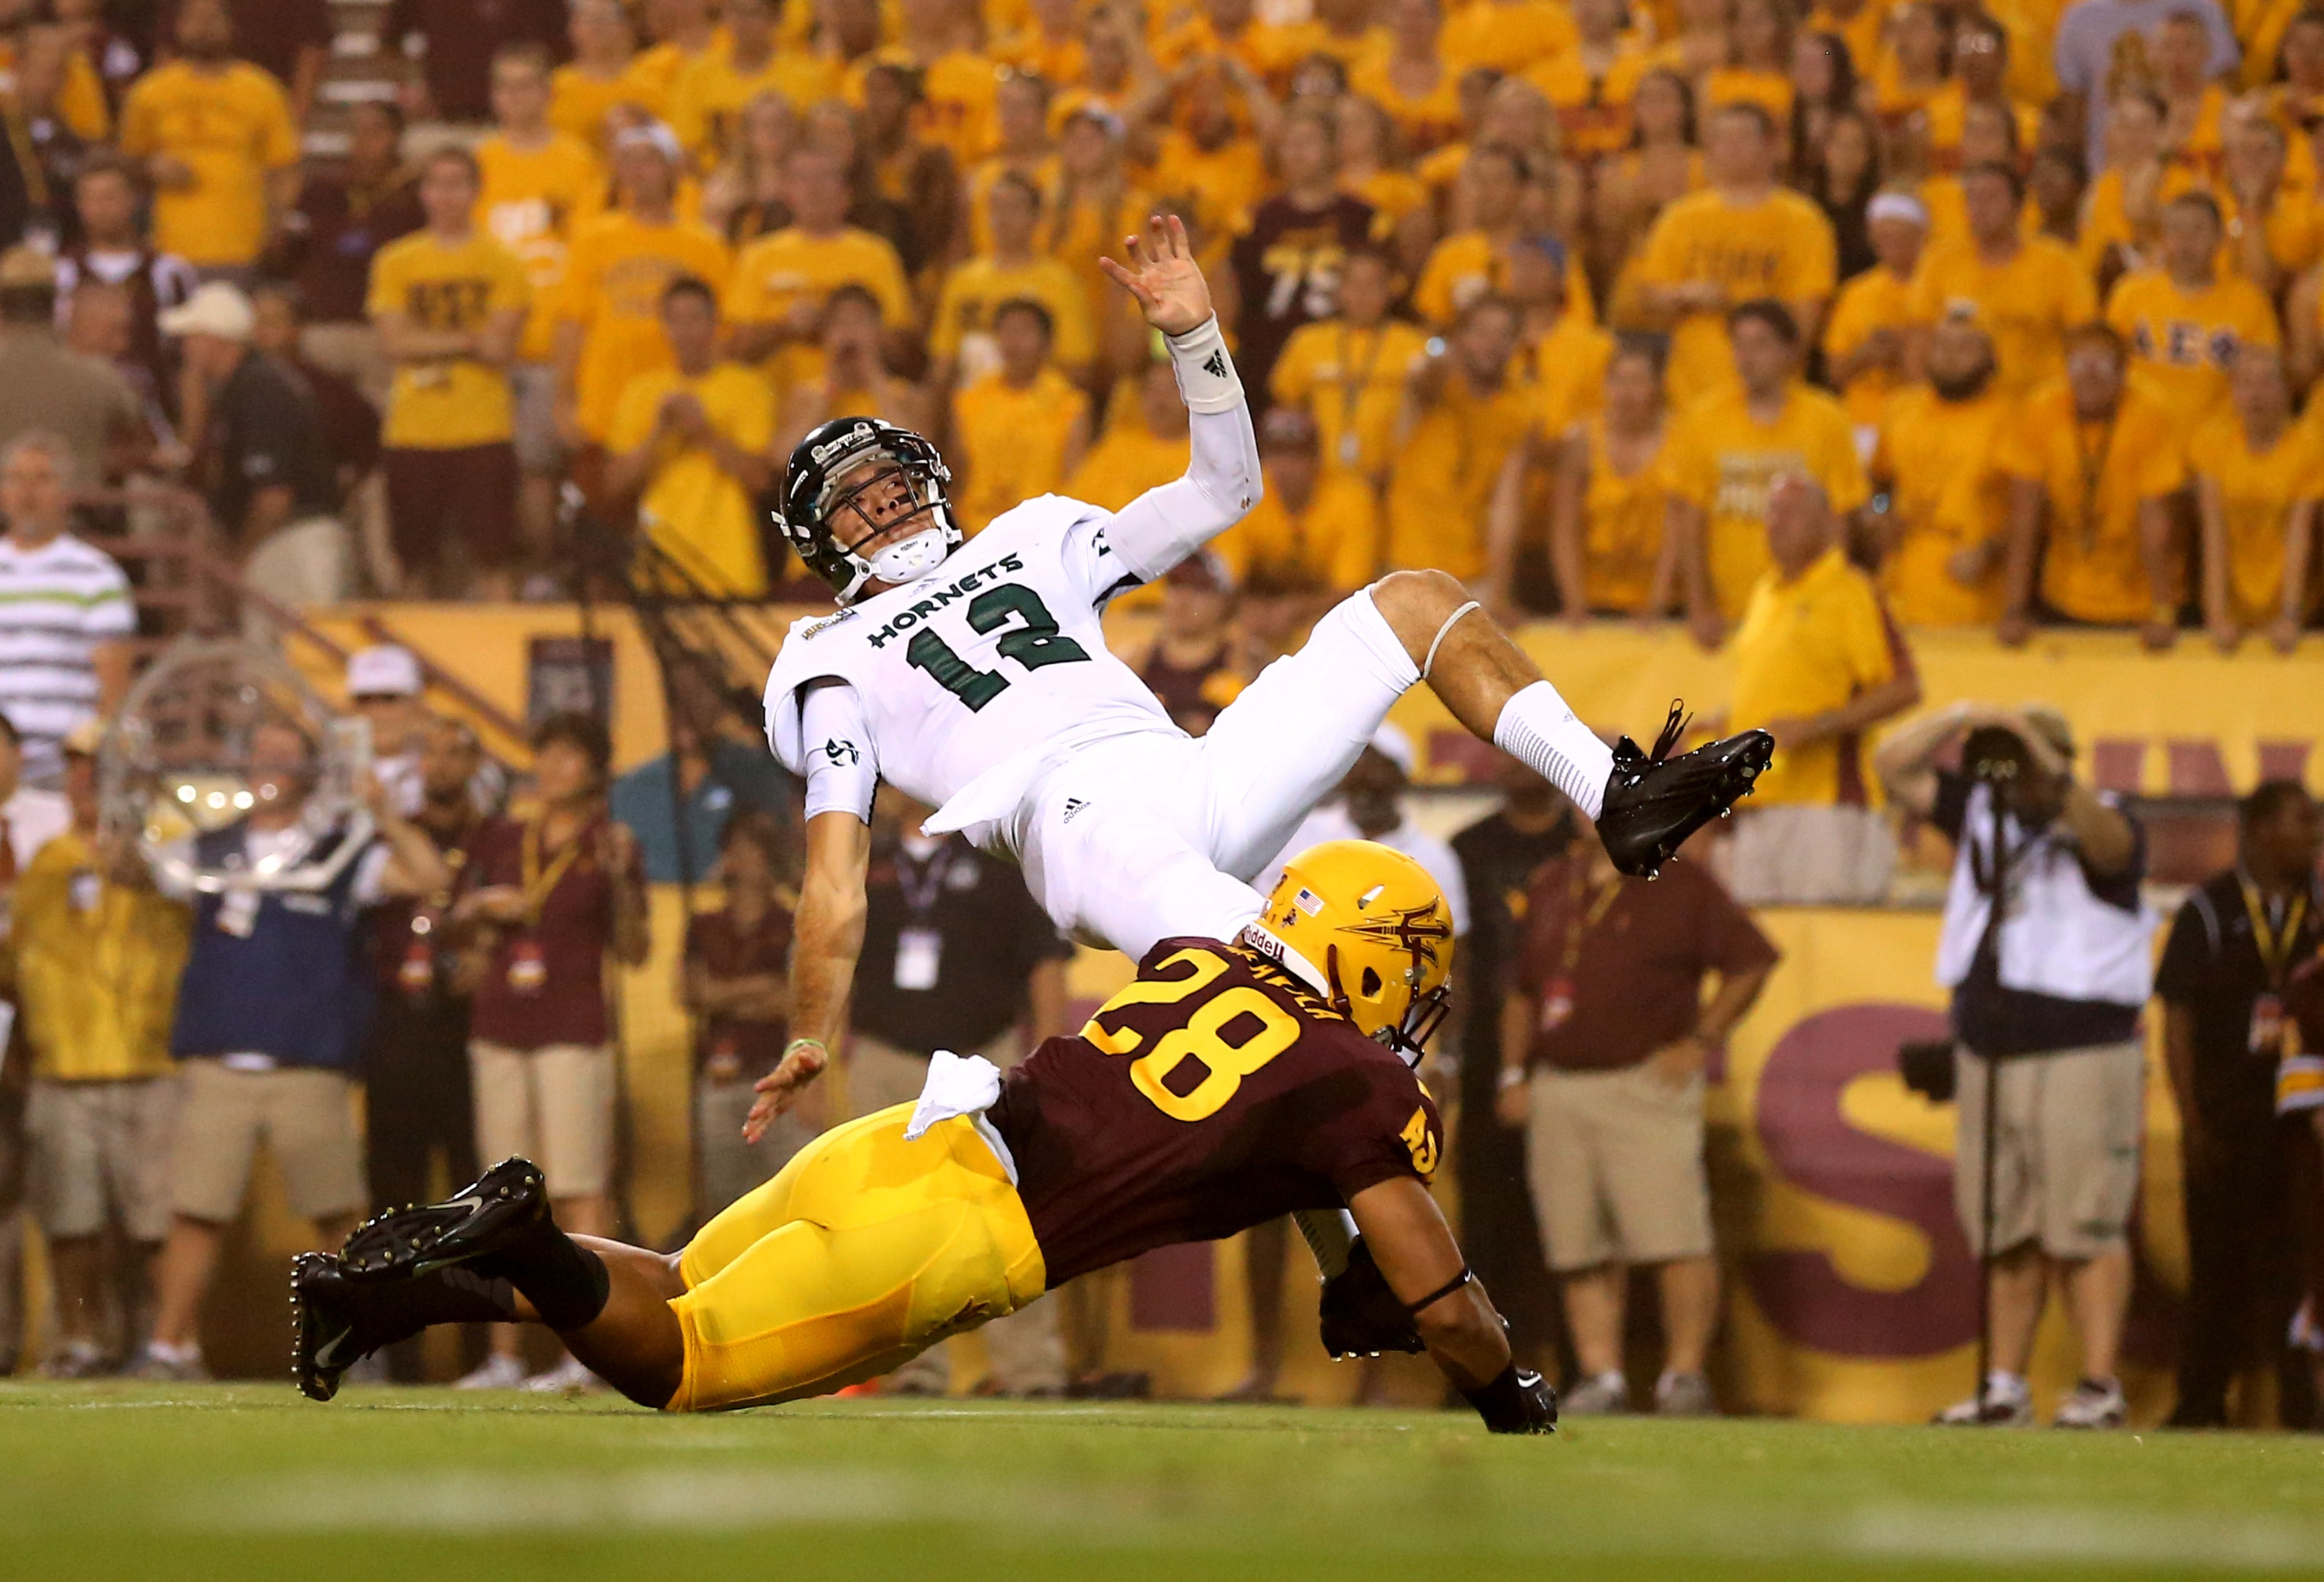 Laiu Moeakiola drew compliments from Todd Graham for his play on Thursday.